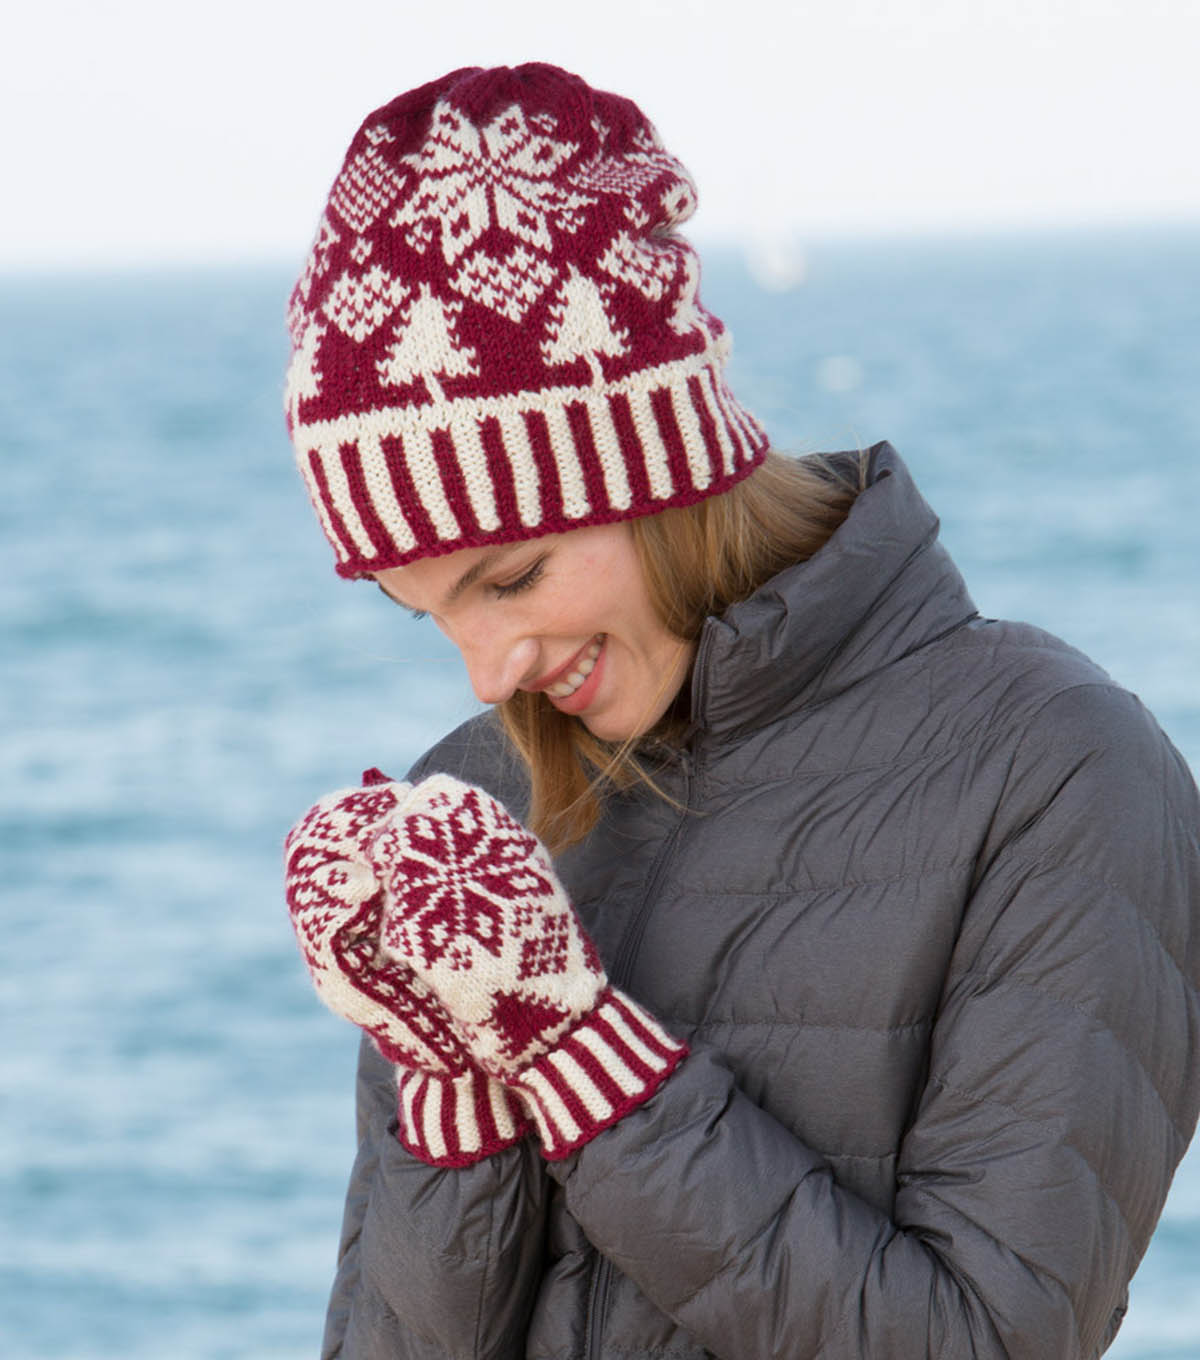 How To Make Northern Fair Isle Knit Hat And Mittens  489c1638b42c